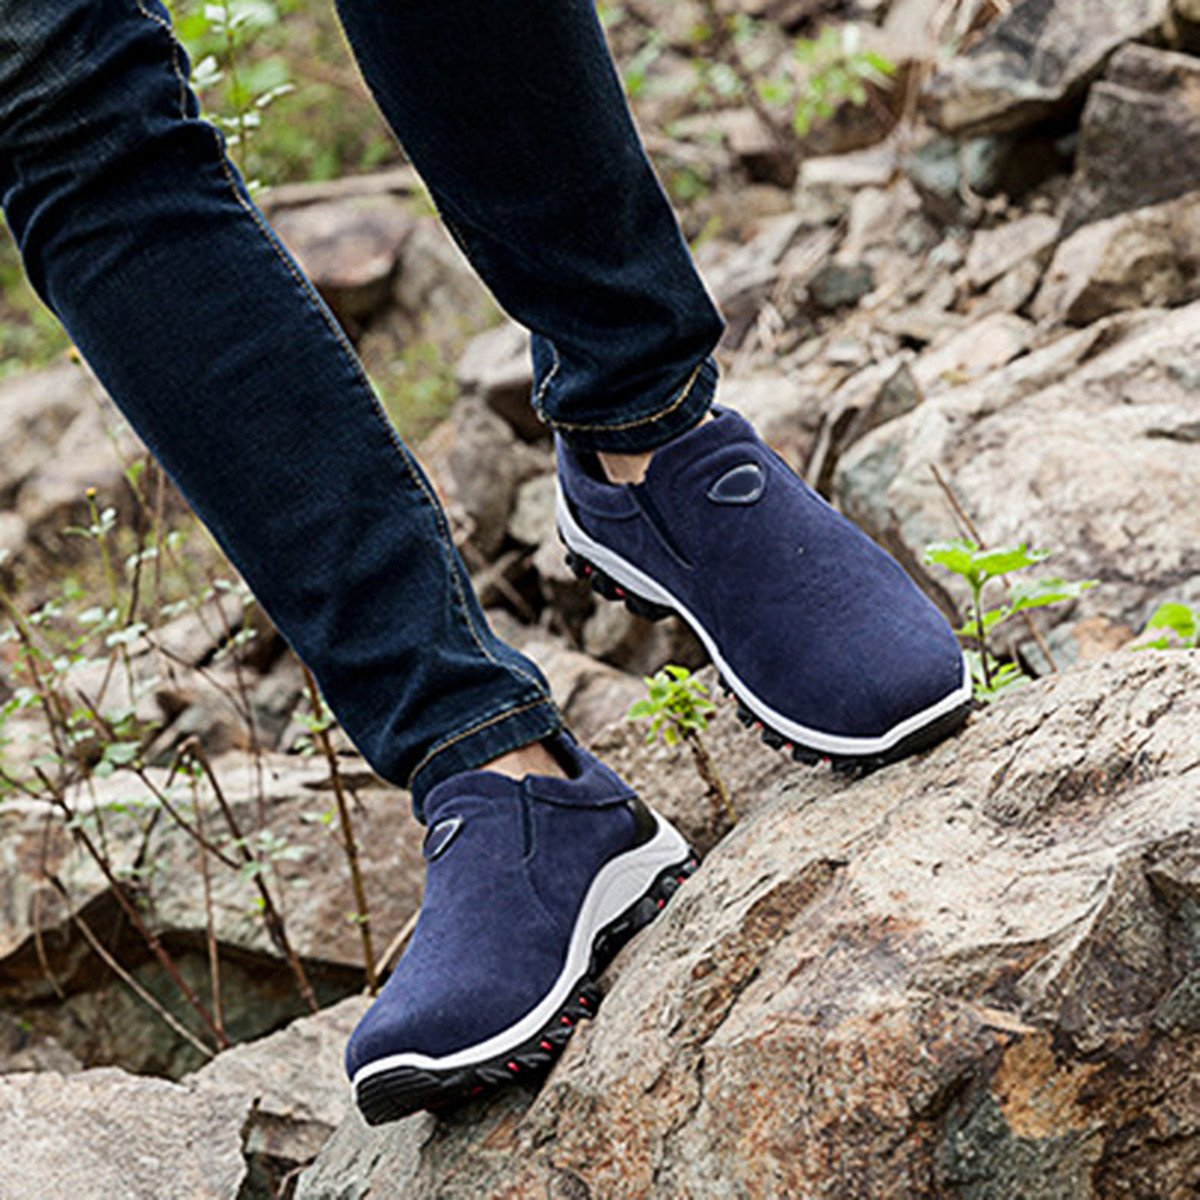 gracosy Mens Hiking Trekking Shoes Suede Slip On Men Trainers Shoes Spring Summer Outdoor Sports Running Camping Sneaker Casual Walking Loafers Flat Non Slip Athletic Breathable Anti-Slip Shoes Size